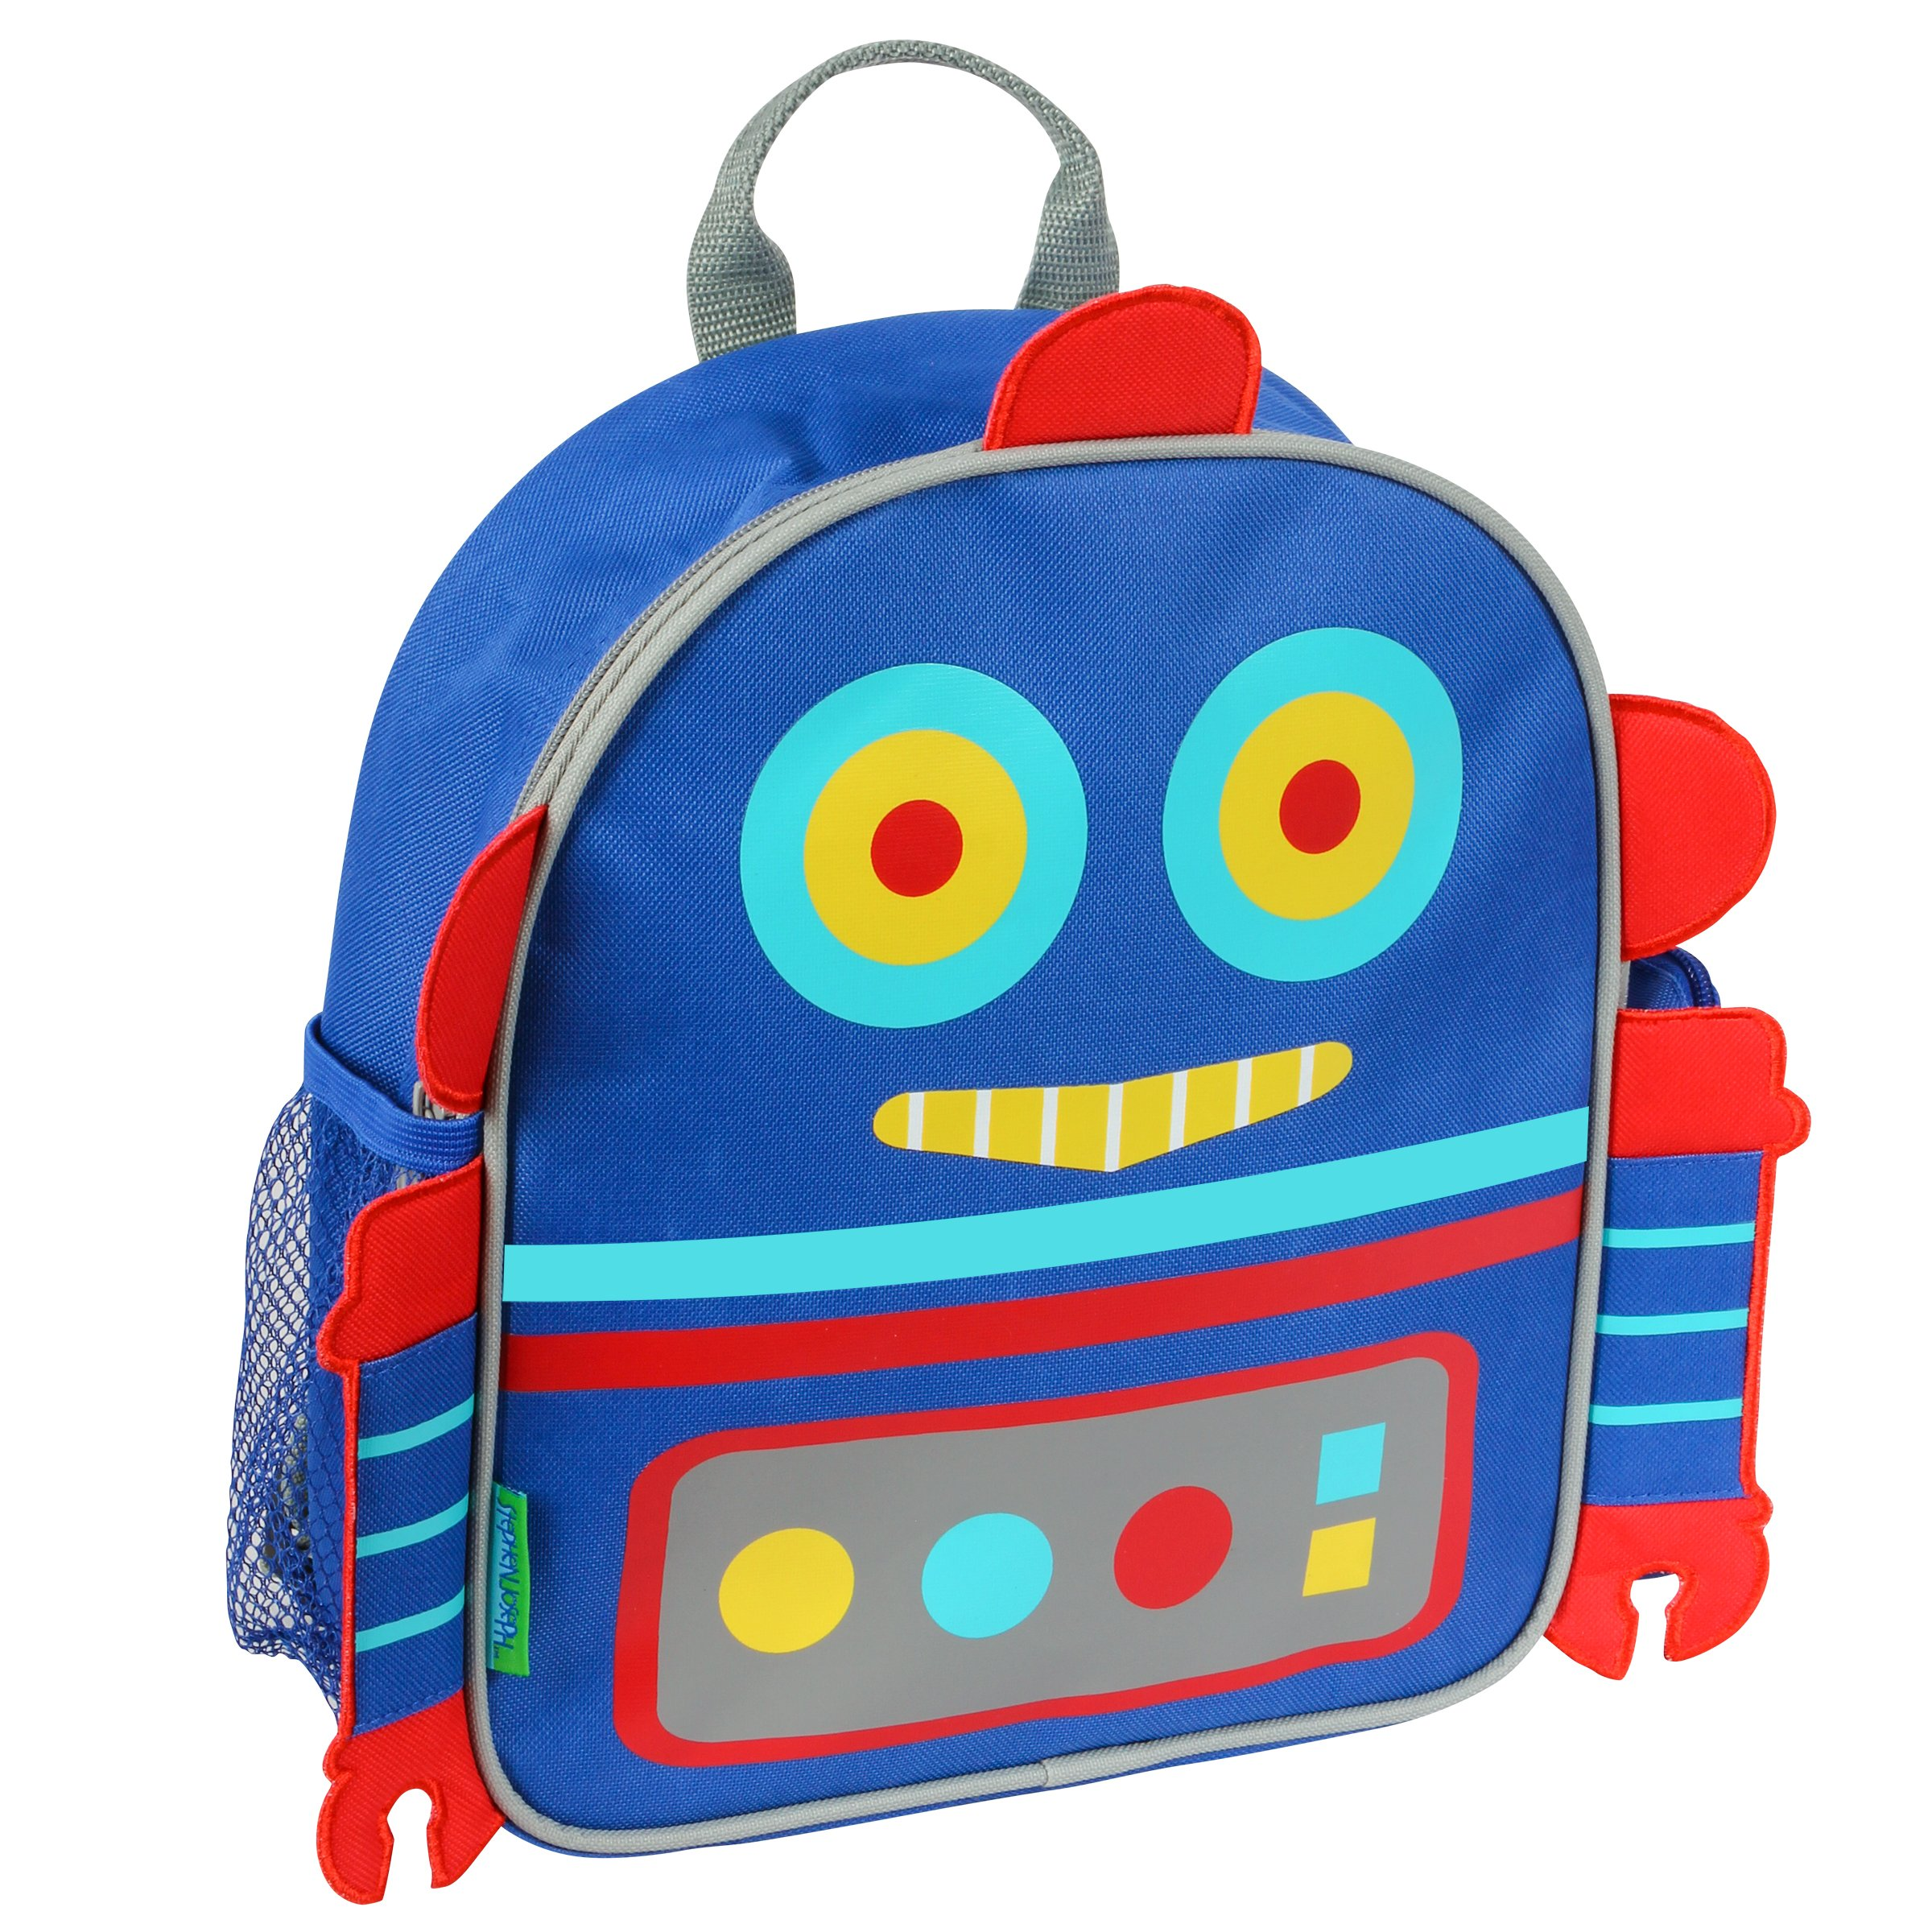 c7dc49bdd0 Stephen Joseph Mini Sidekick Backpack - SJ-1090-76   Kids  Backpacks ...